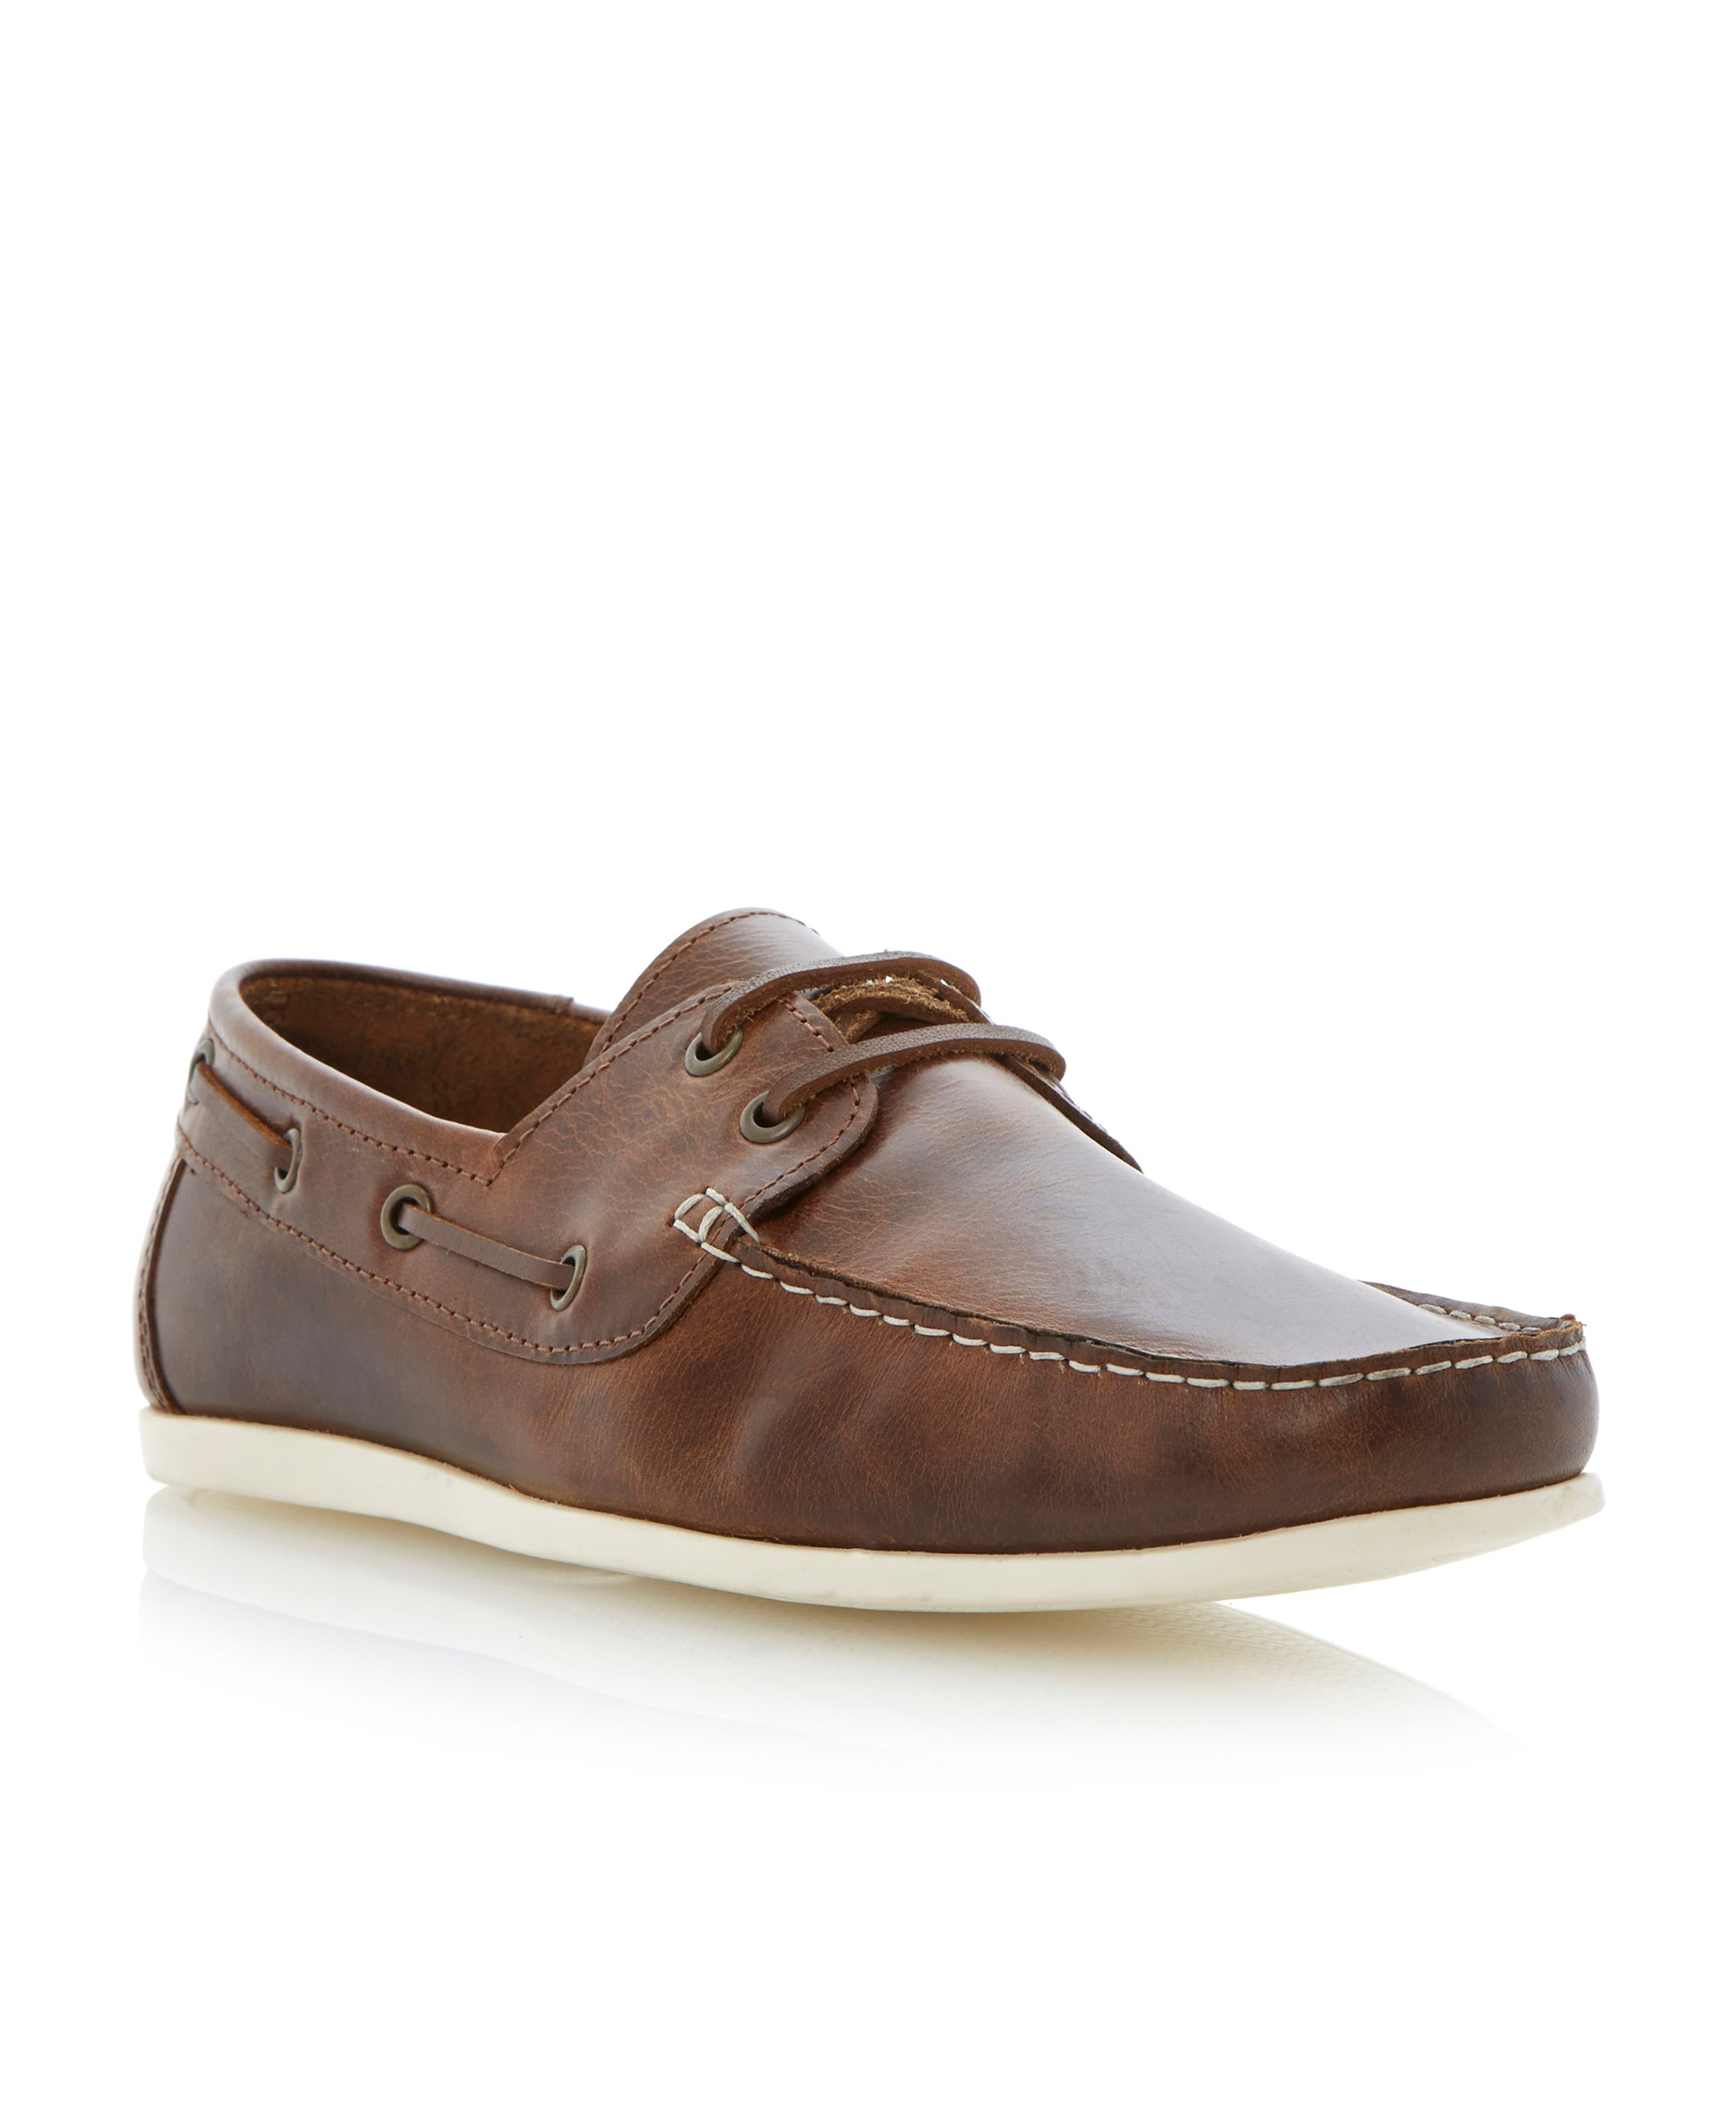 Baltic lace up boat shoes